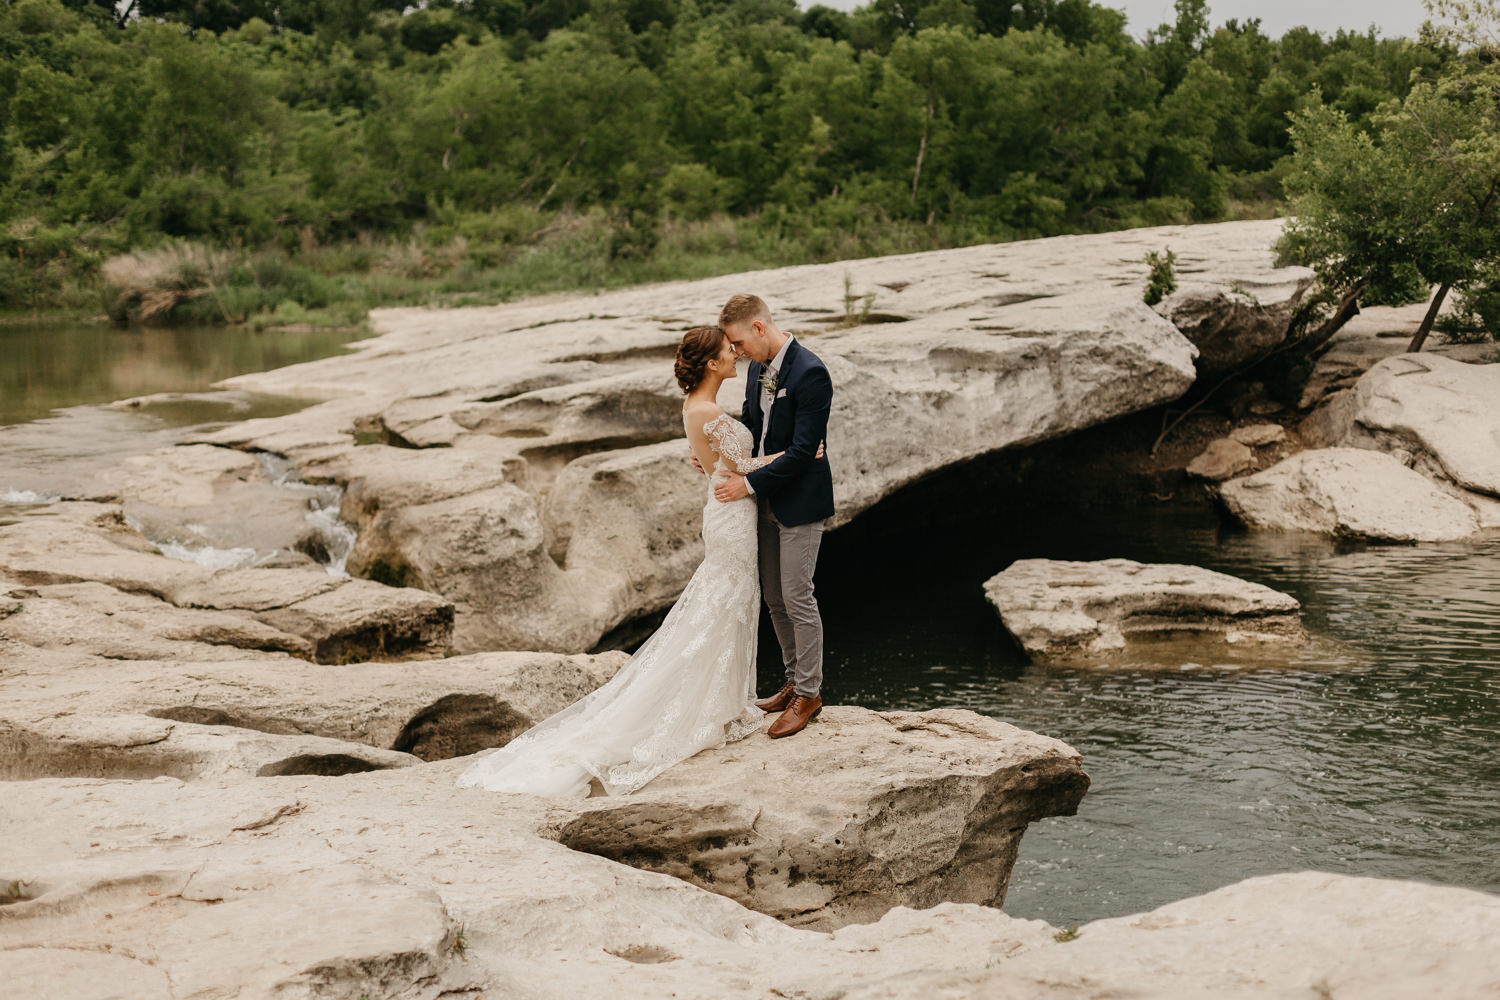 HaileyDylan_Austin Elopement Photographer Austin Wedding Photographer-128.jpg